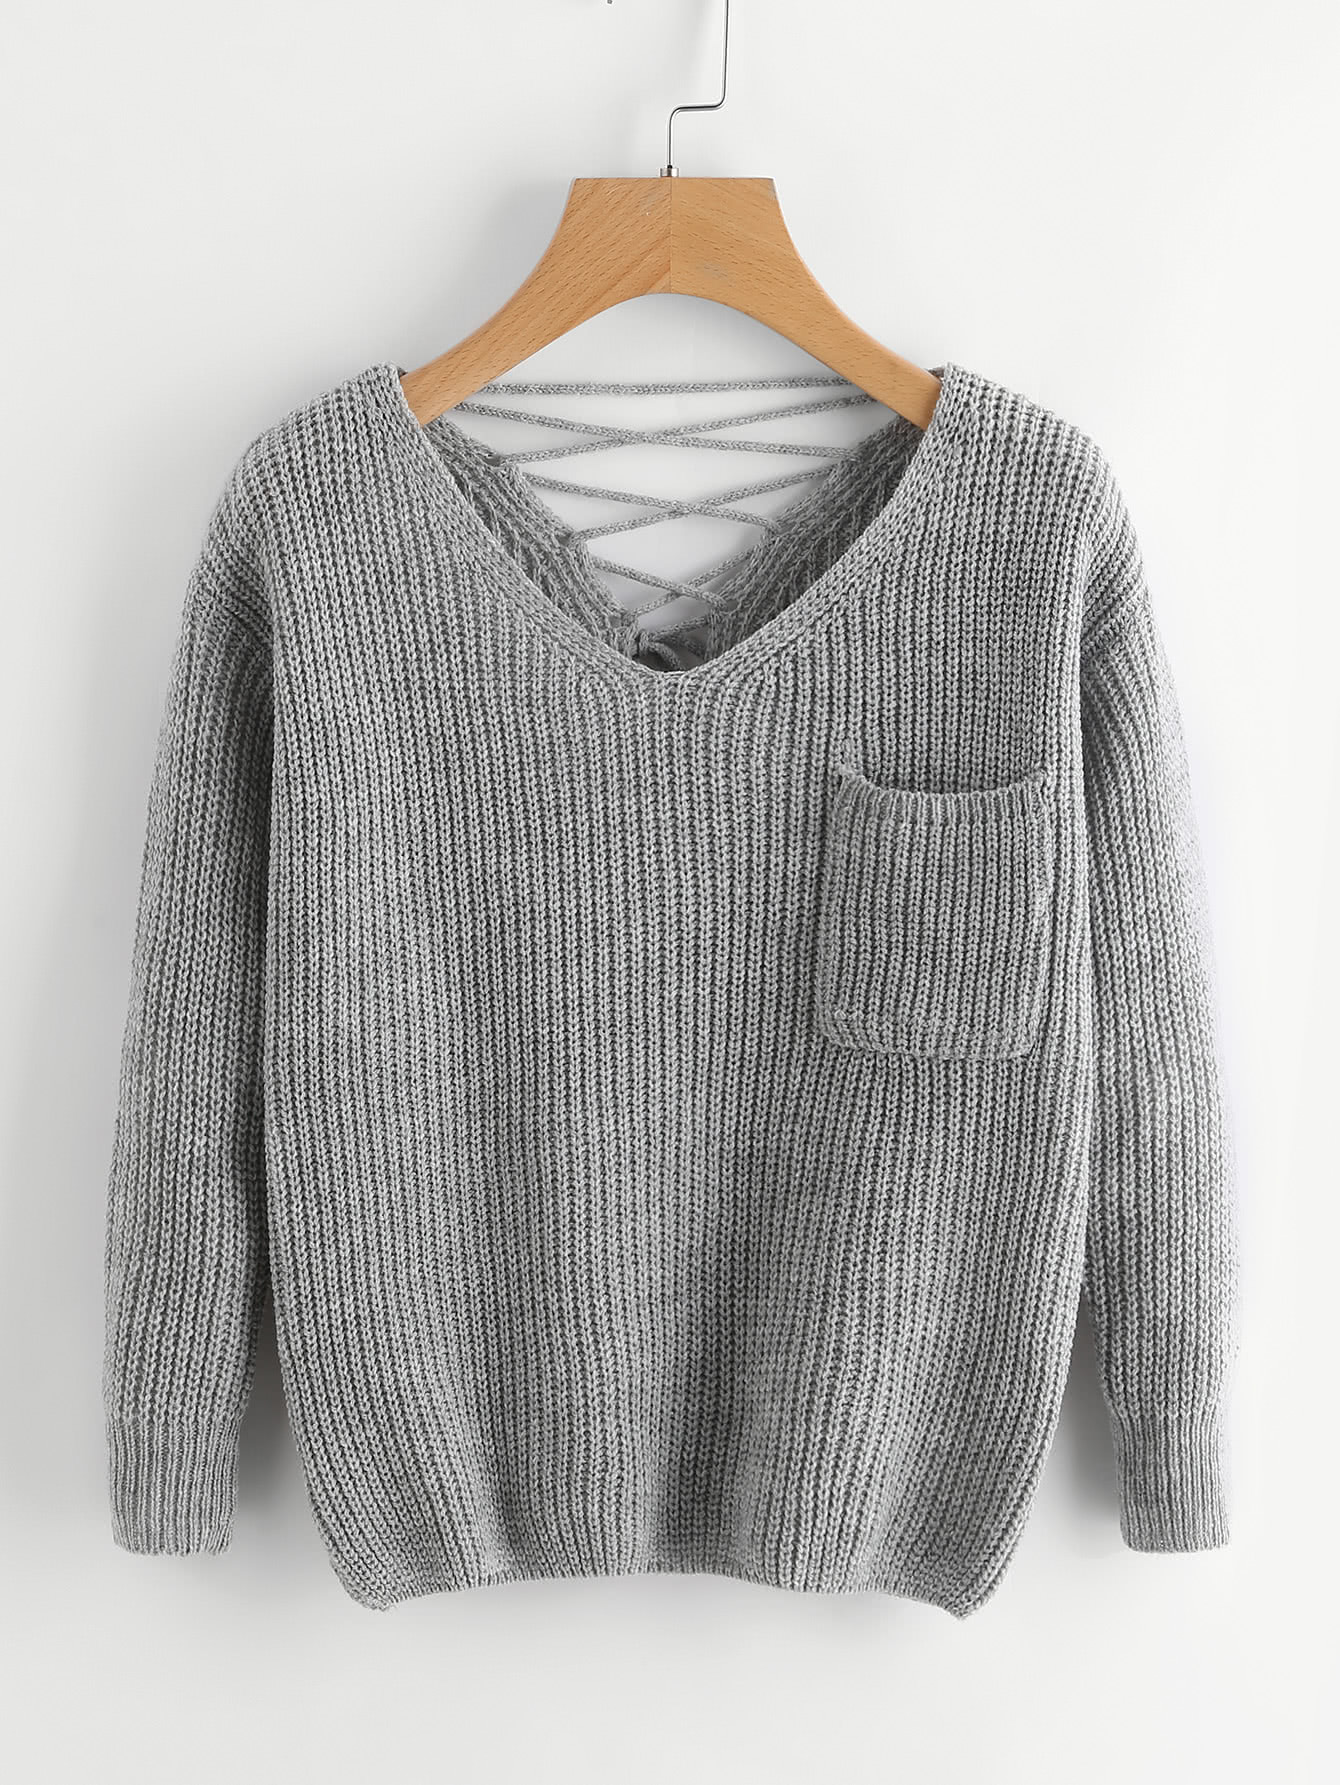 Double V Lace Up Back Chunky Knit Jumper sweater170906002